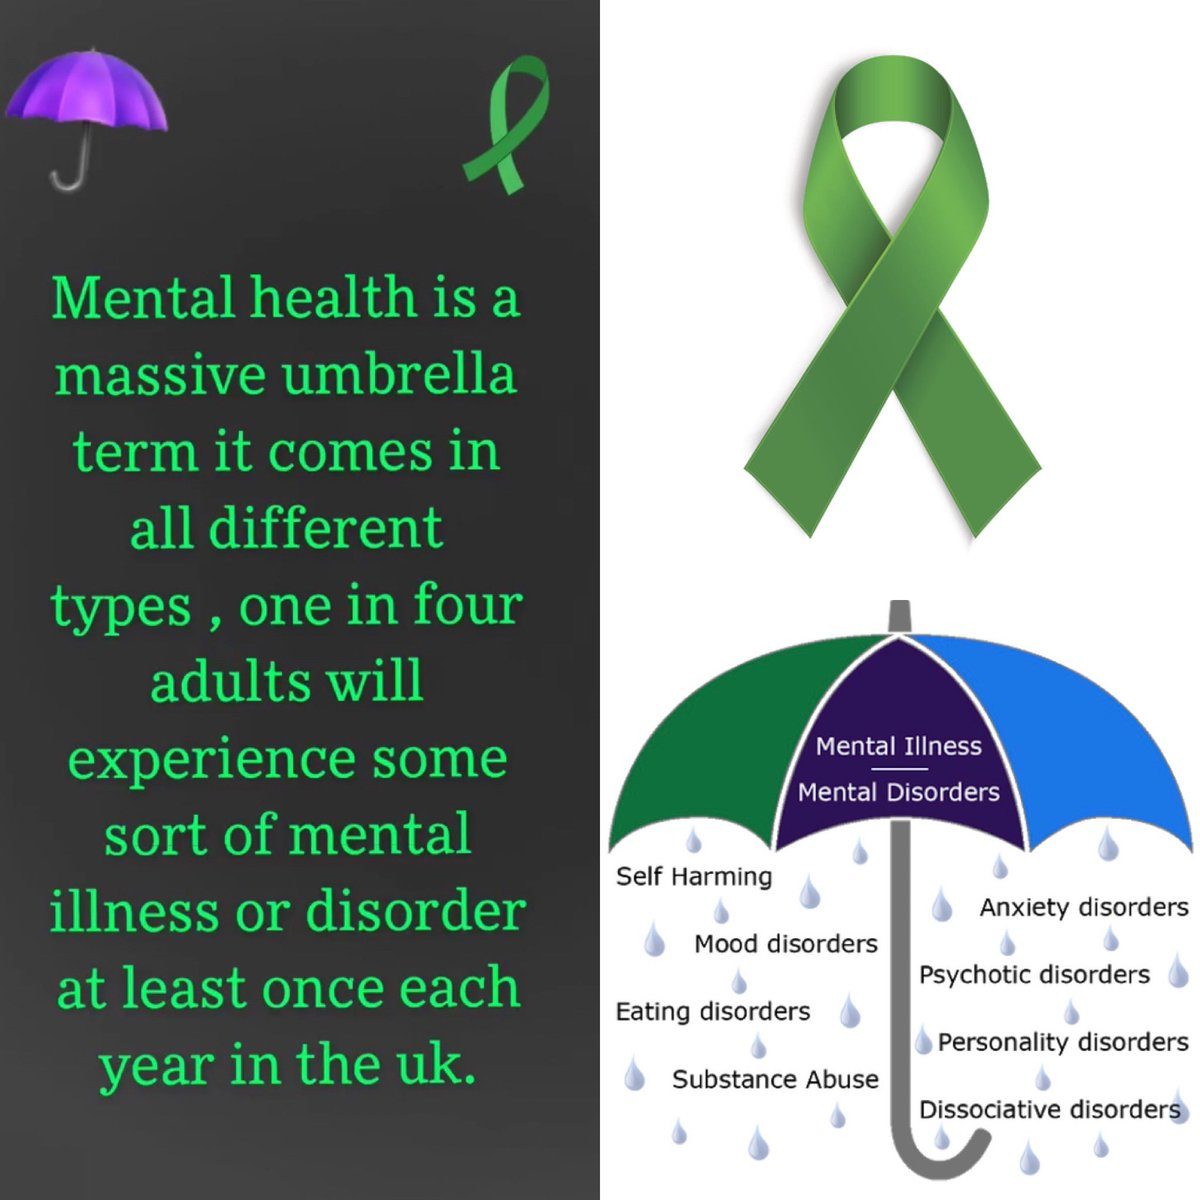 Mental health is a massive killer In the UK & Republic of Ireland, there were 6,859 suicides in 2018. #mentalhealthawareness #mentalhealthmatters #mentalillness #mentalhealthisimportant #mentalhealthproblems #greenribbon https://t.co/Smd7lt0IGo